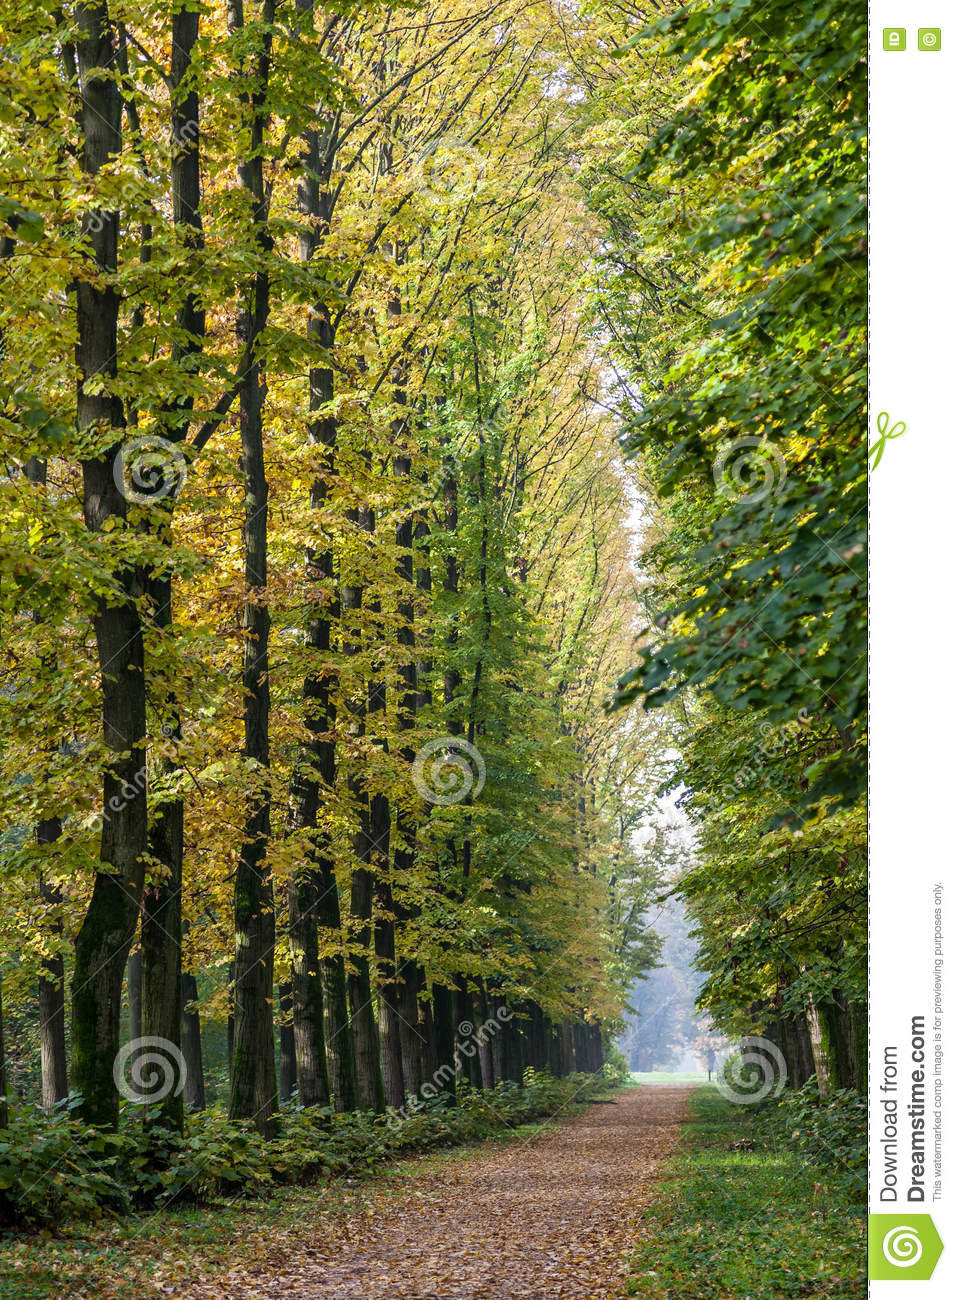 Avenue of Elm trees in Parco di Monza